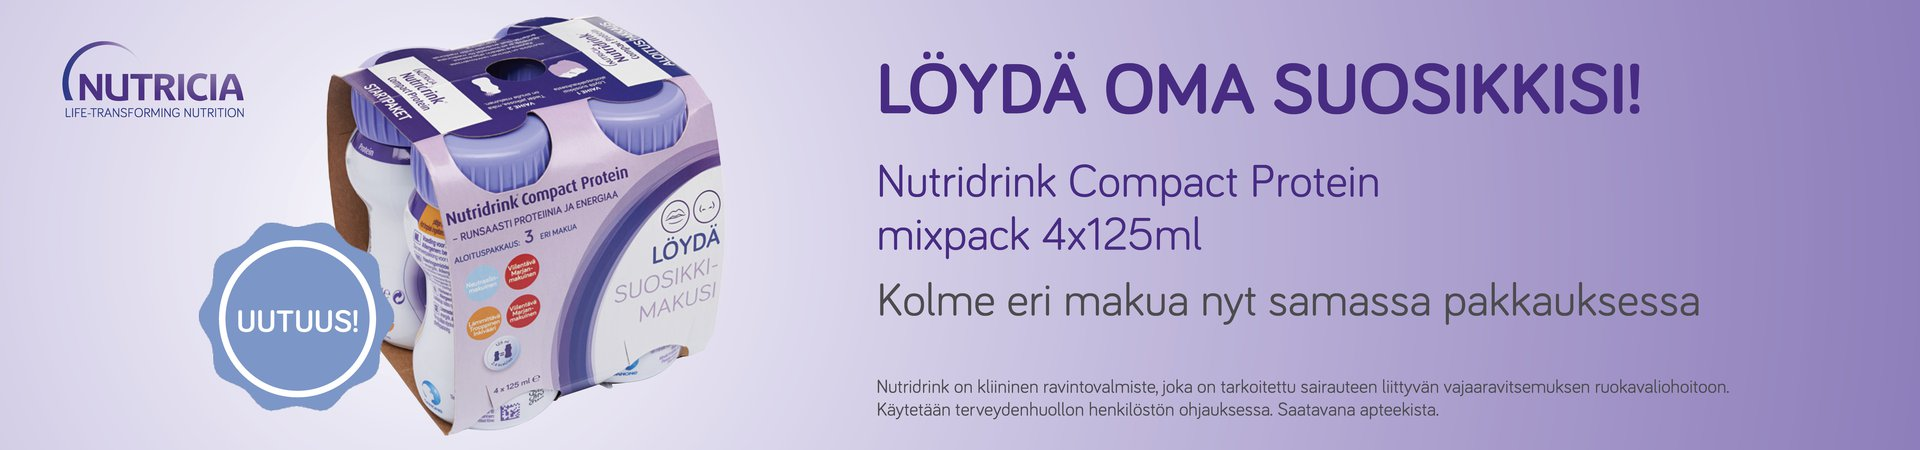 uutuus nutridrink compact protein mixpack